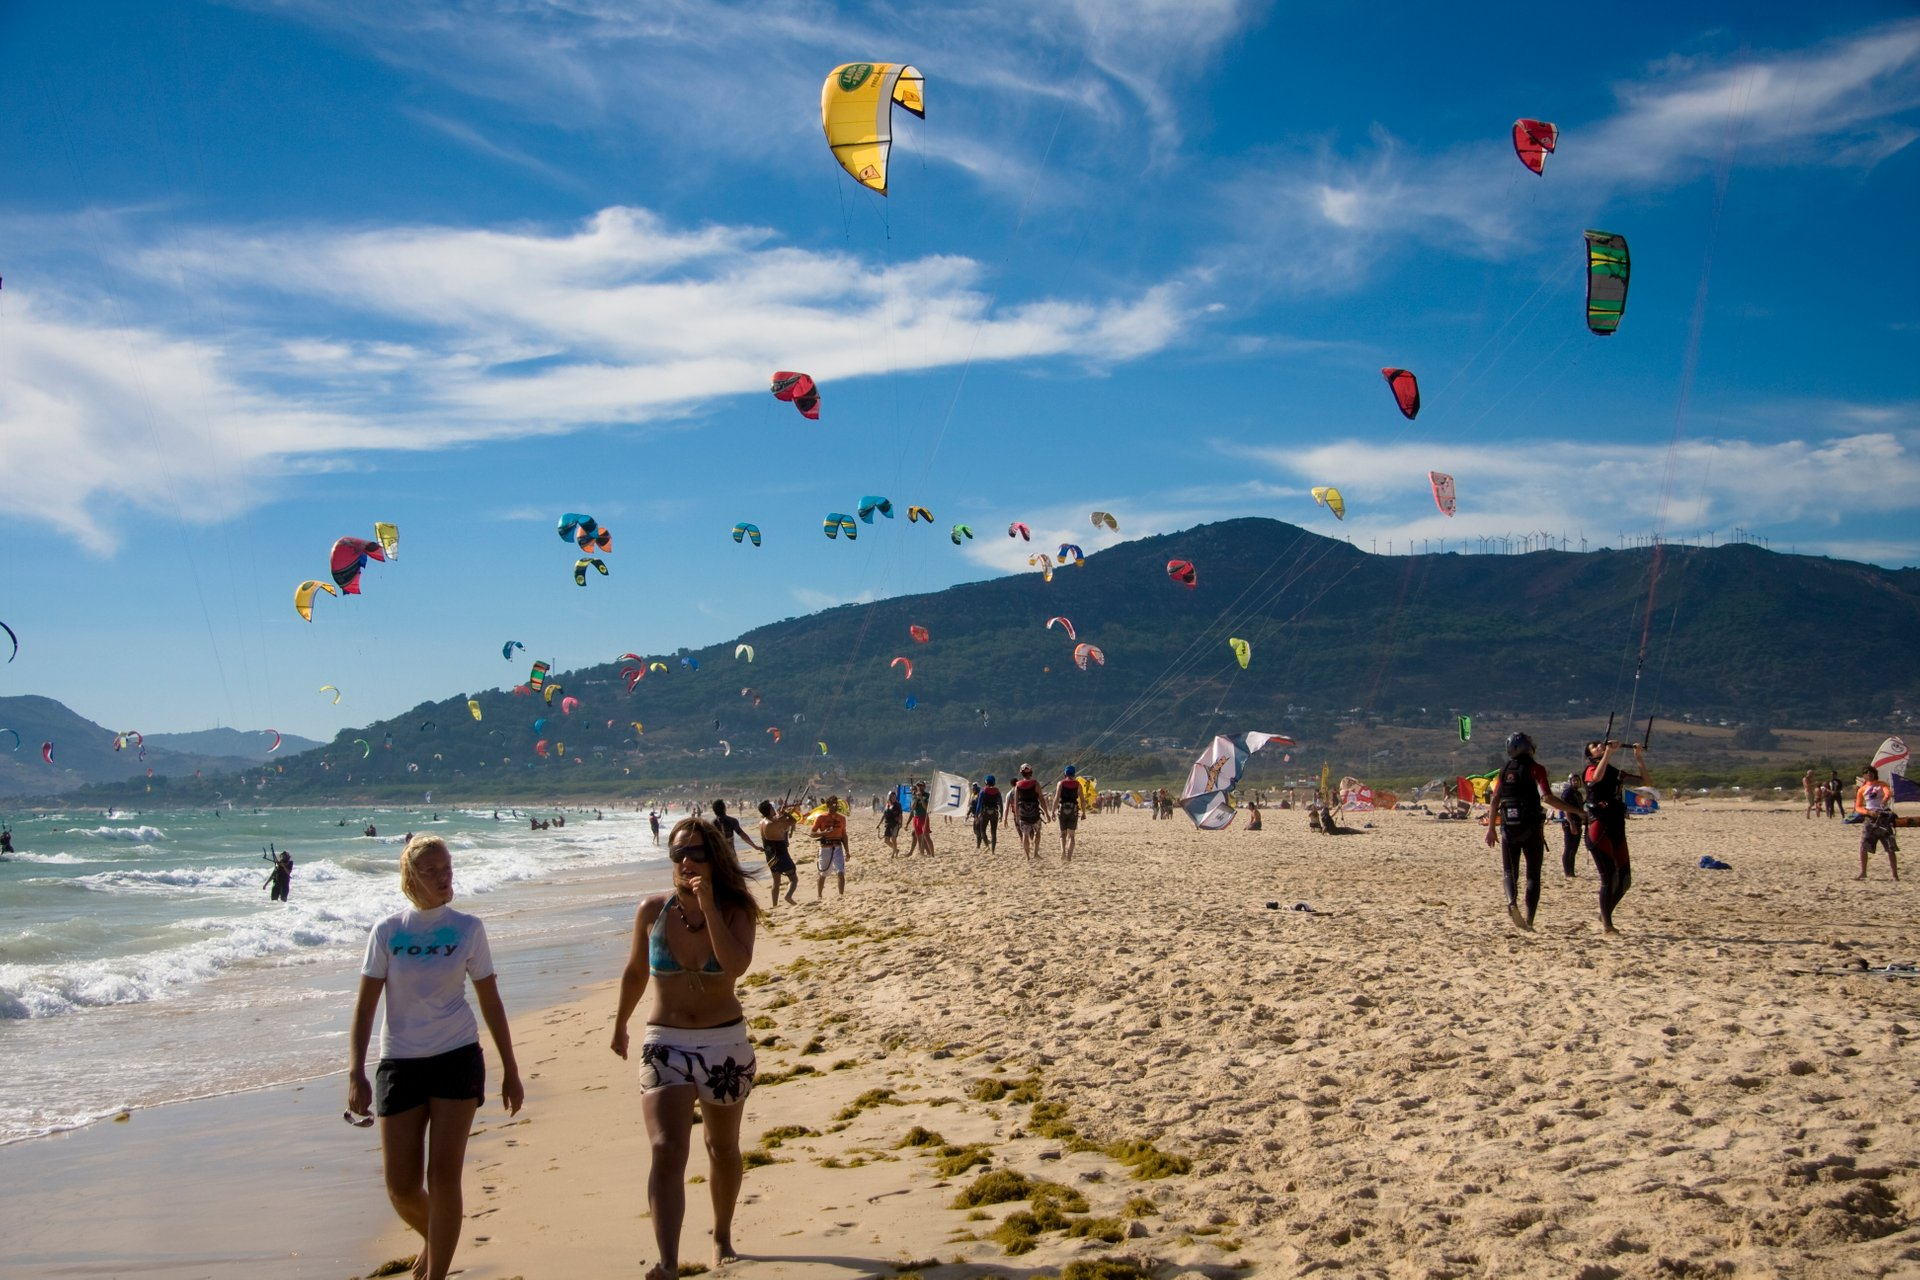 Kitesurfing & Windsurfing in Spain 2020 - Best Time